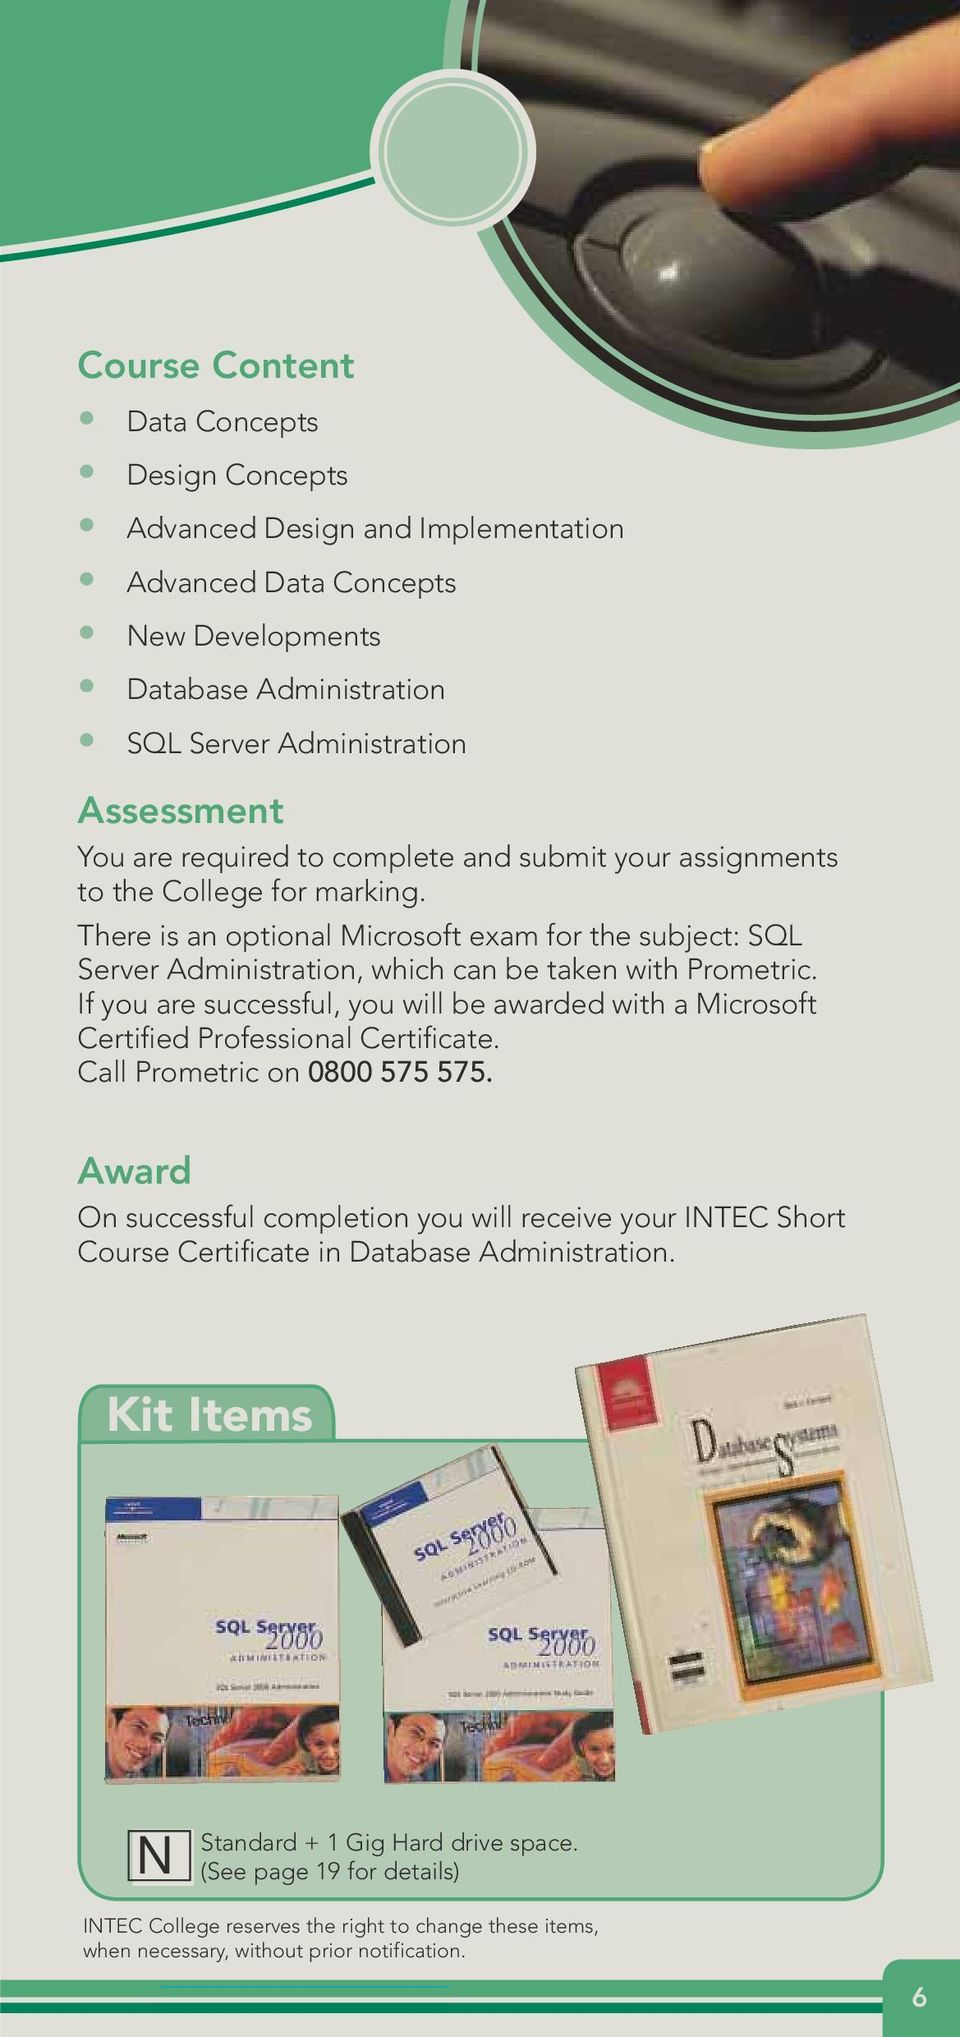 If you are successful, you will be awarded with a Microsoft Certified Professional Certificate. Call Prometric on 0800 575 575.